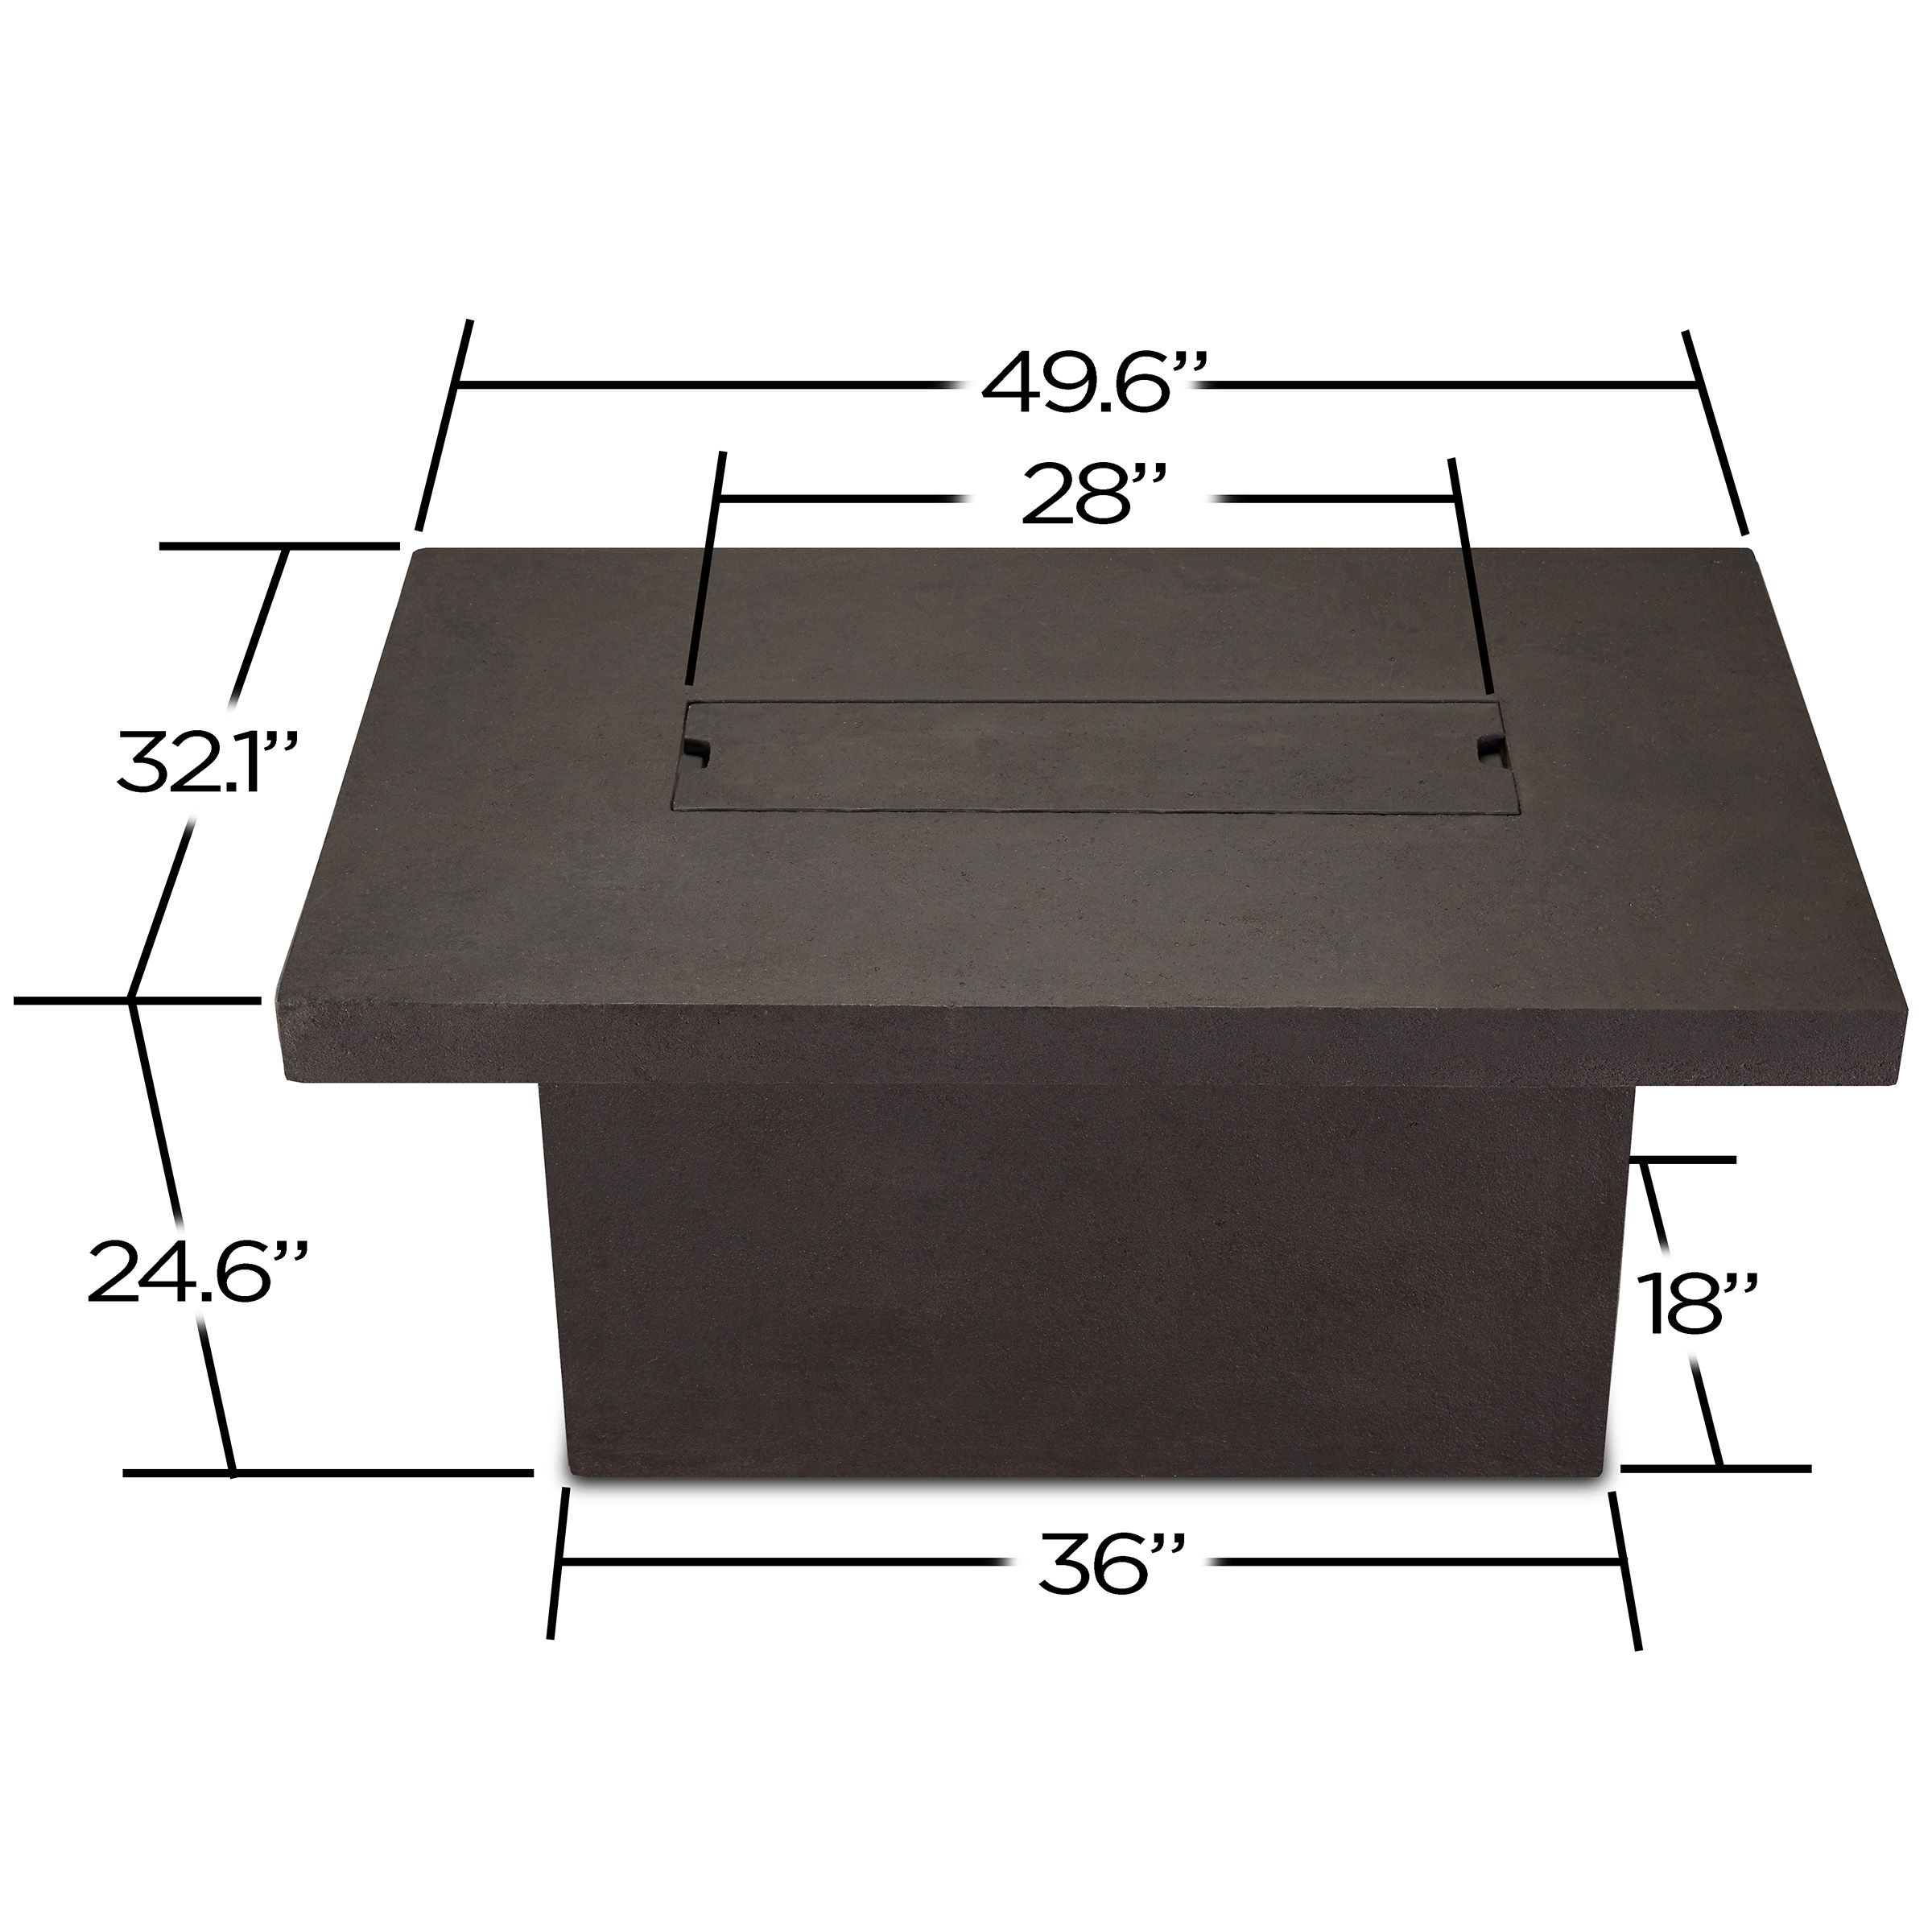 Ventura rectangle chat height fire table in kodiak brown fire